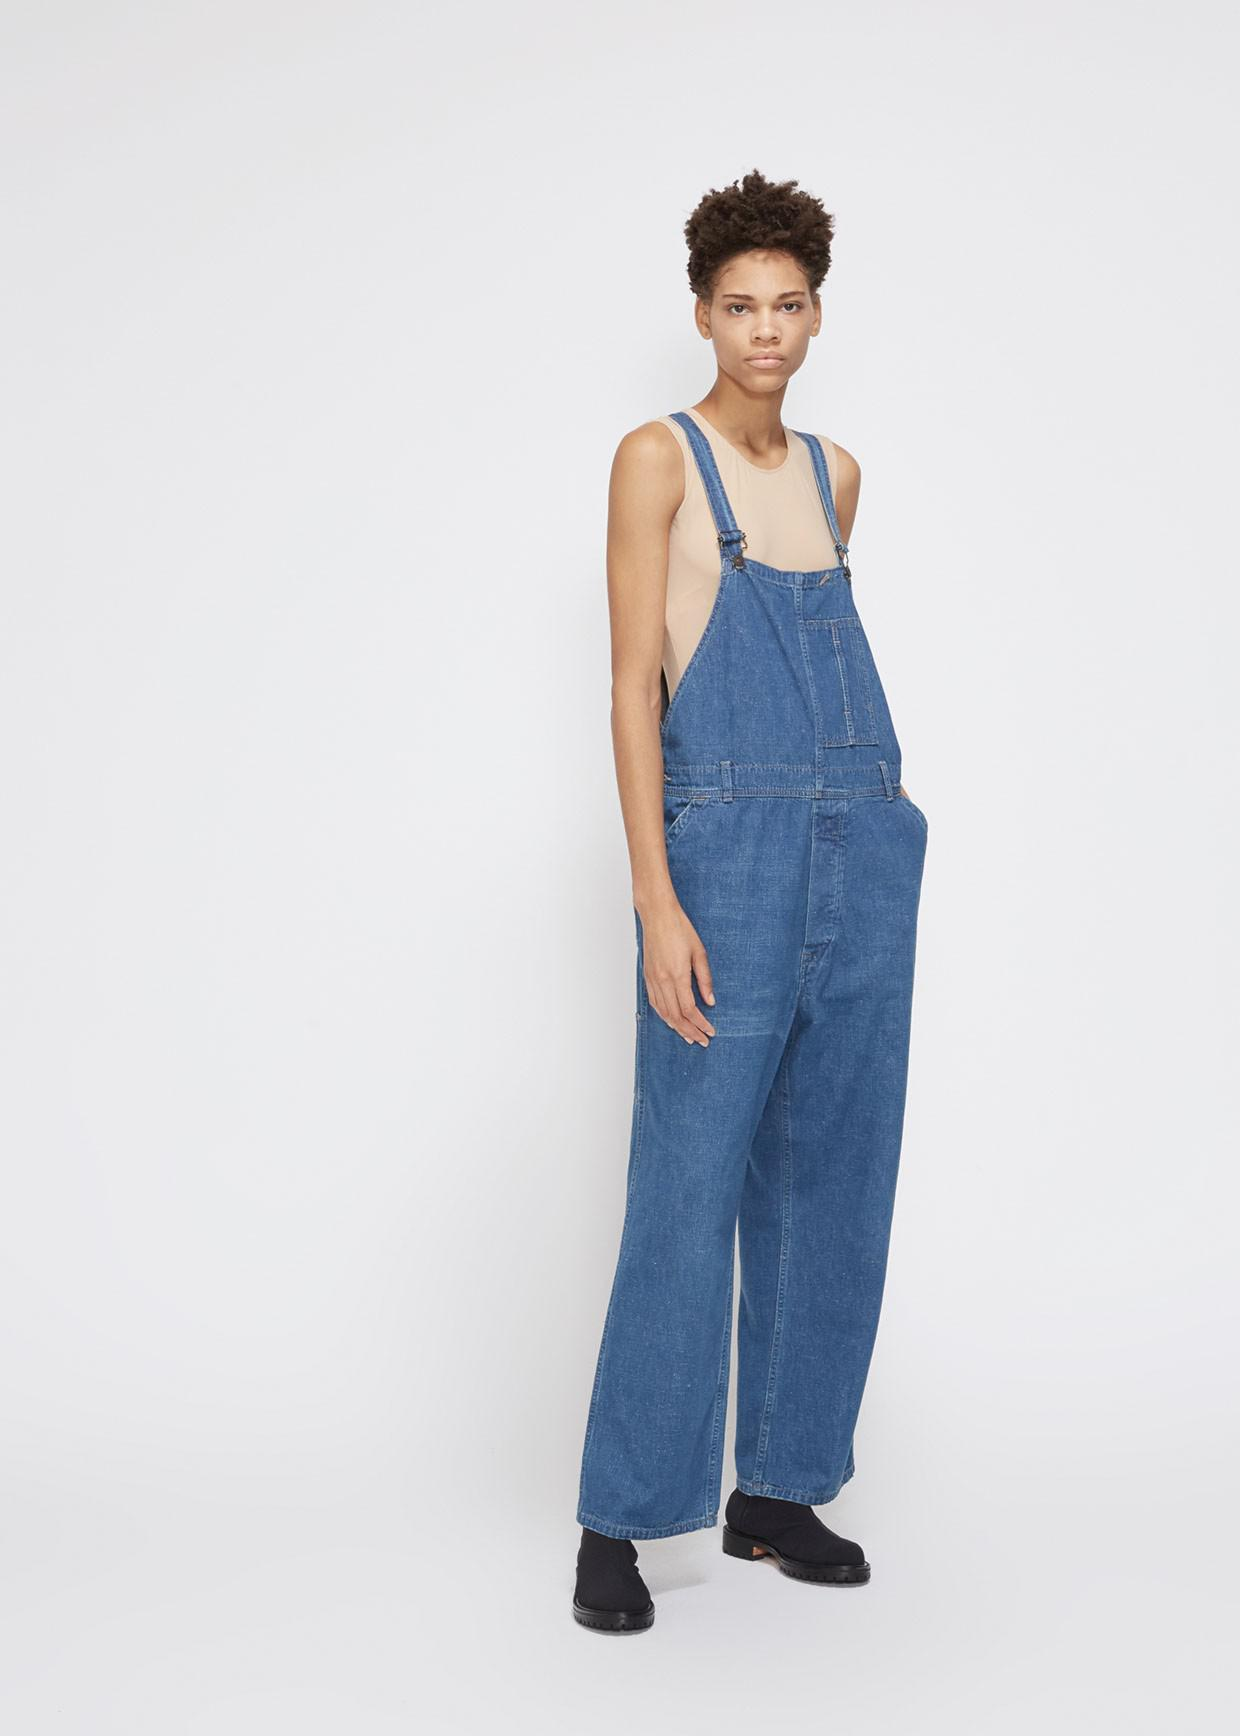 29764f0e4d05 Chimala Denim Overall in Blue - Lyst